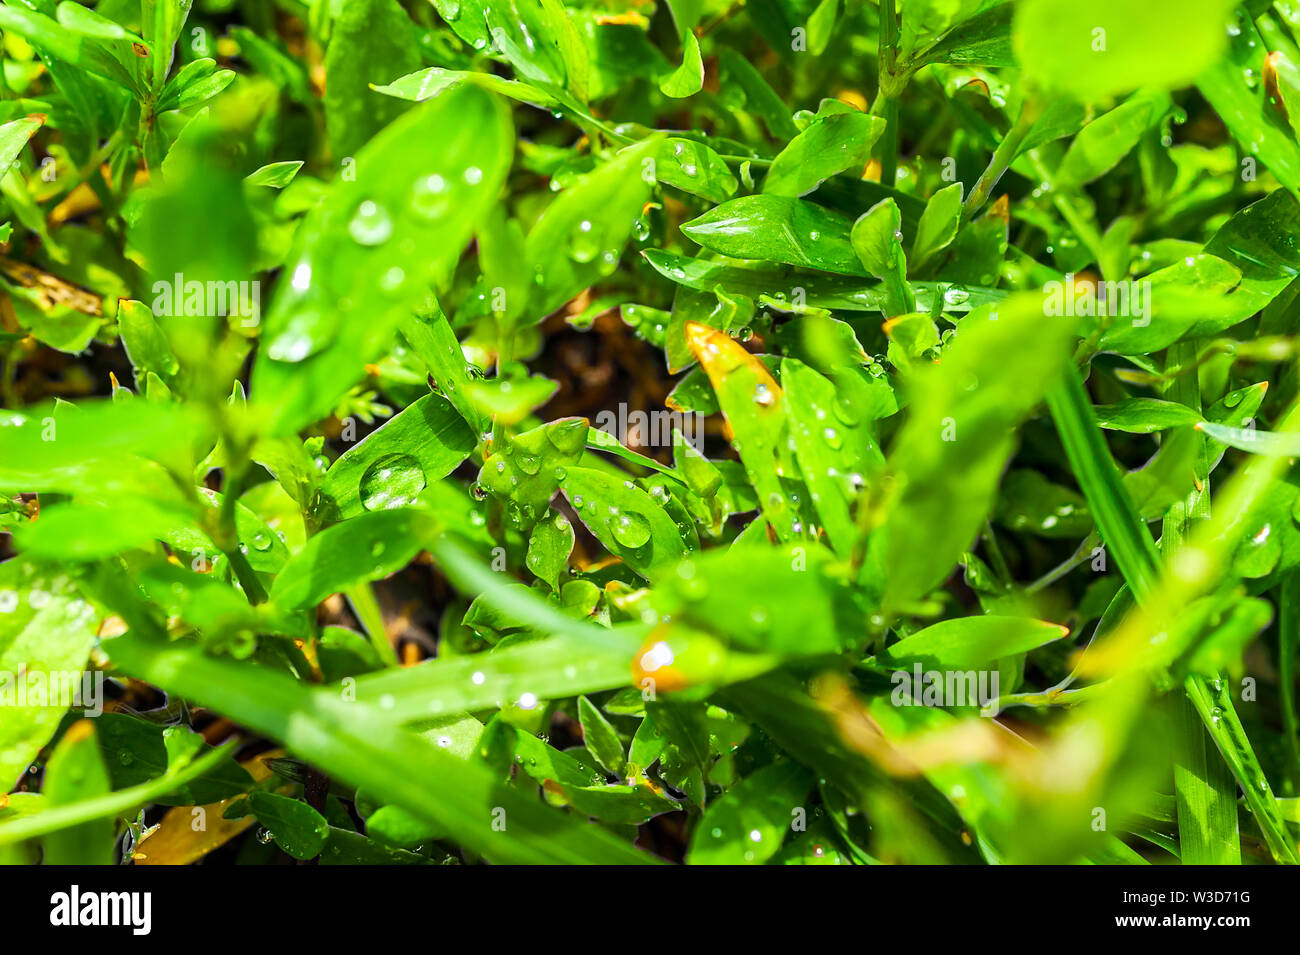 Macro Image of Morning Dew or Raindrops on Green Grass. - Stock Image